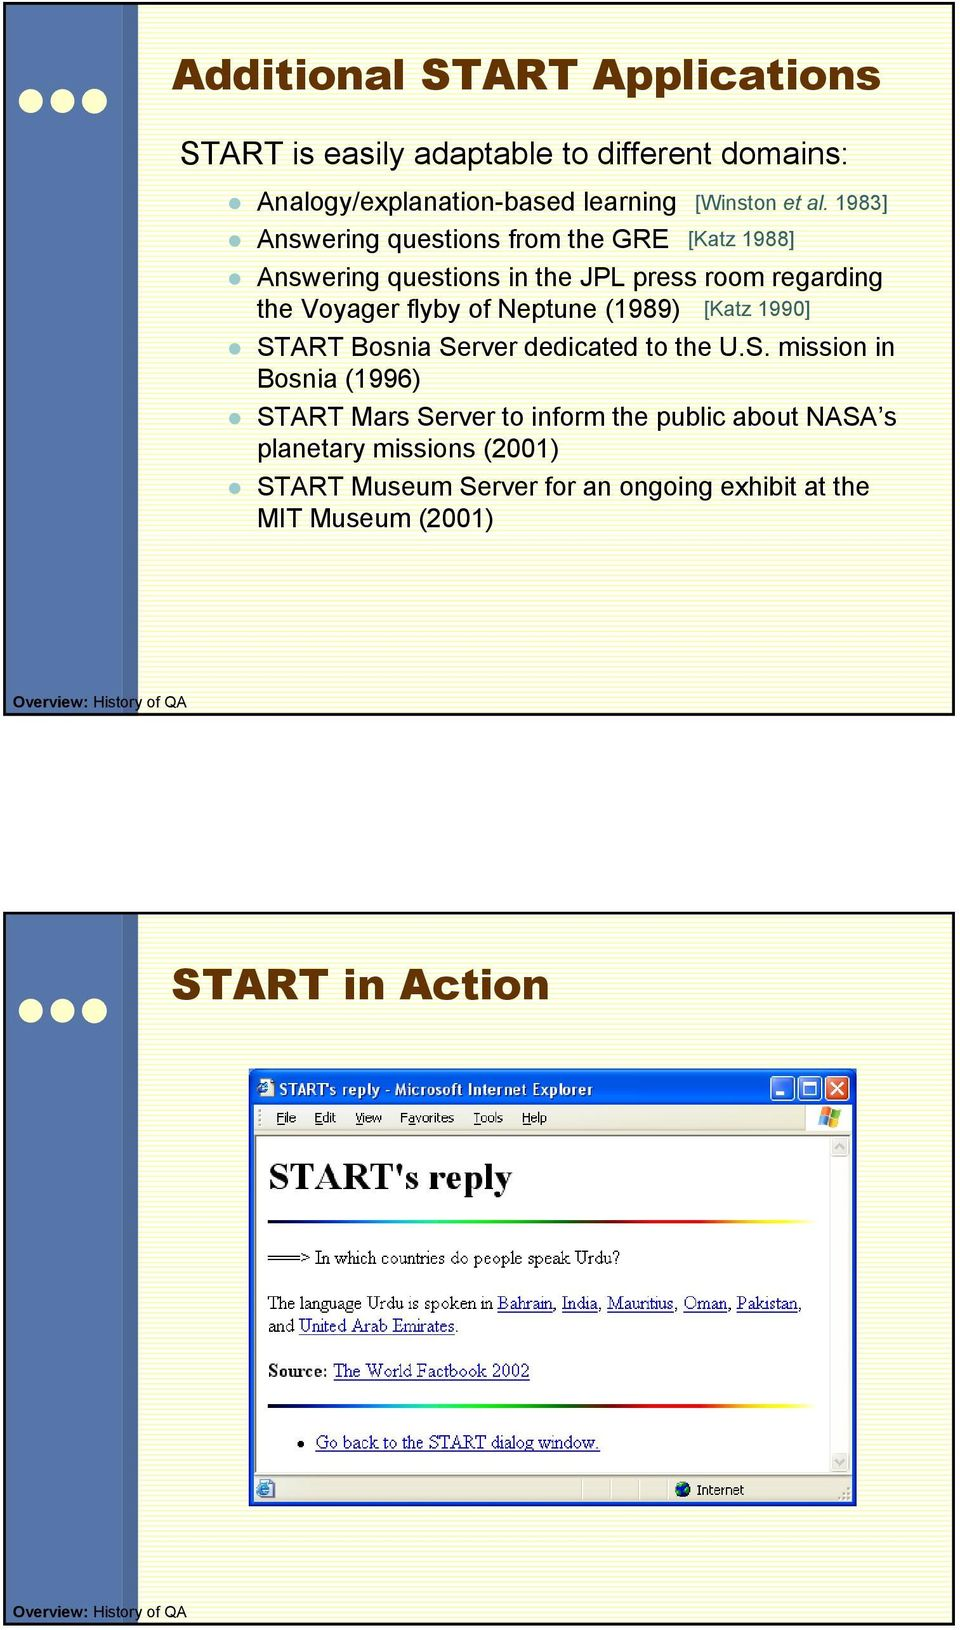 1983] [Katz 1988] Answering questions in the JPL press room regarding the Voyager flyby of Neptune (1989) [Katz 1990] START Bosnia Server